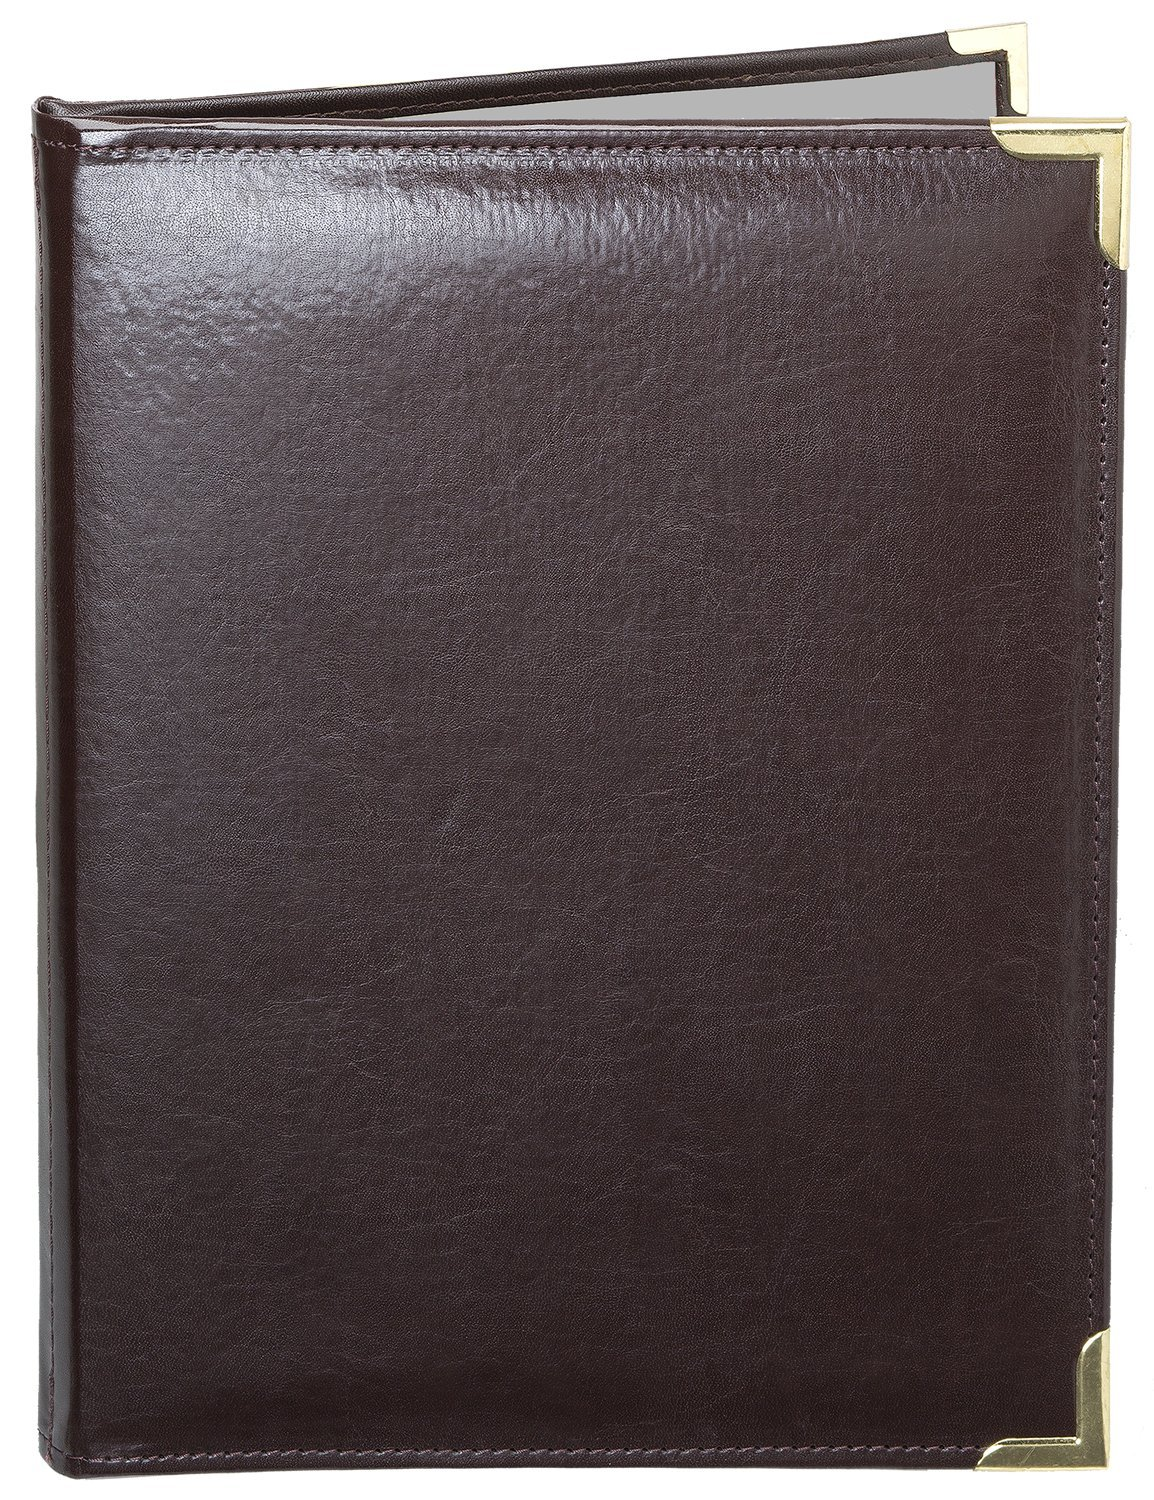 MenuCoverMan • Case of 5 Menu Covers • Allante #7008 BROWN DOUBLE PANEL - 2-VIEW - 8.5'' W x 14'' H - STITCHED-Elegant Gold metal corners. See all covers: type MenuCoverMan in Amazon search.